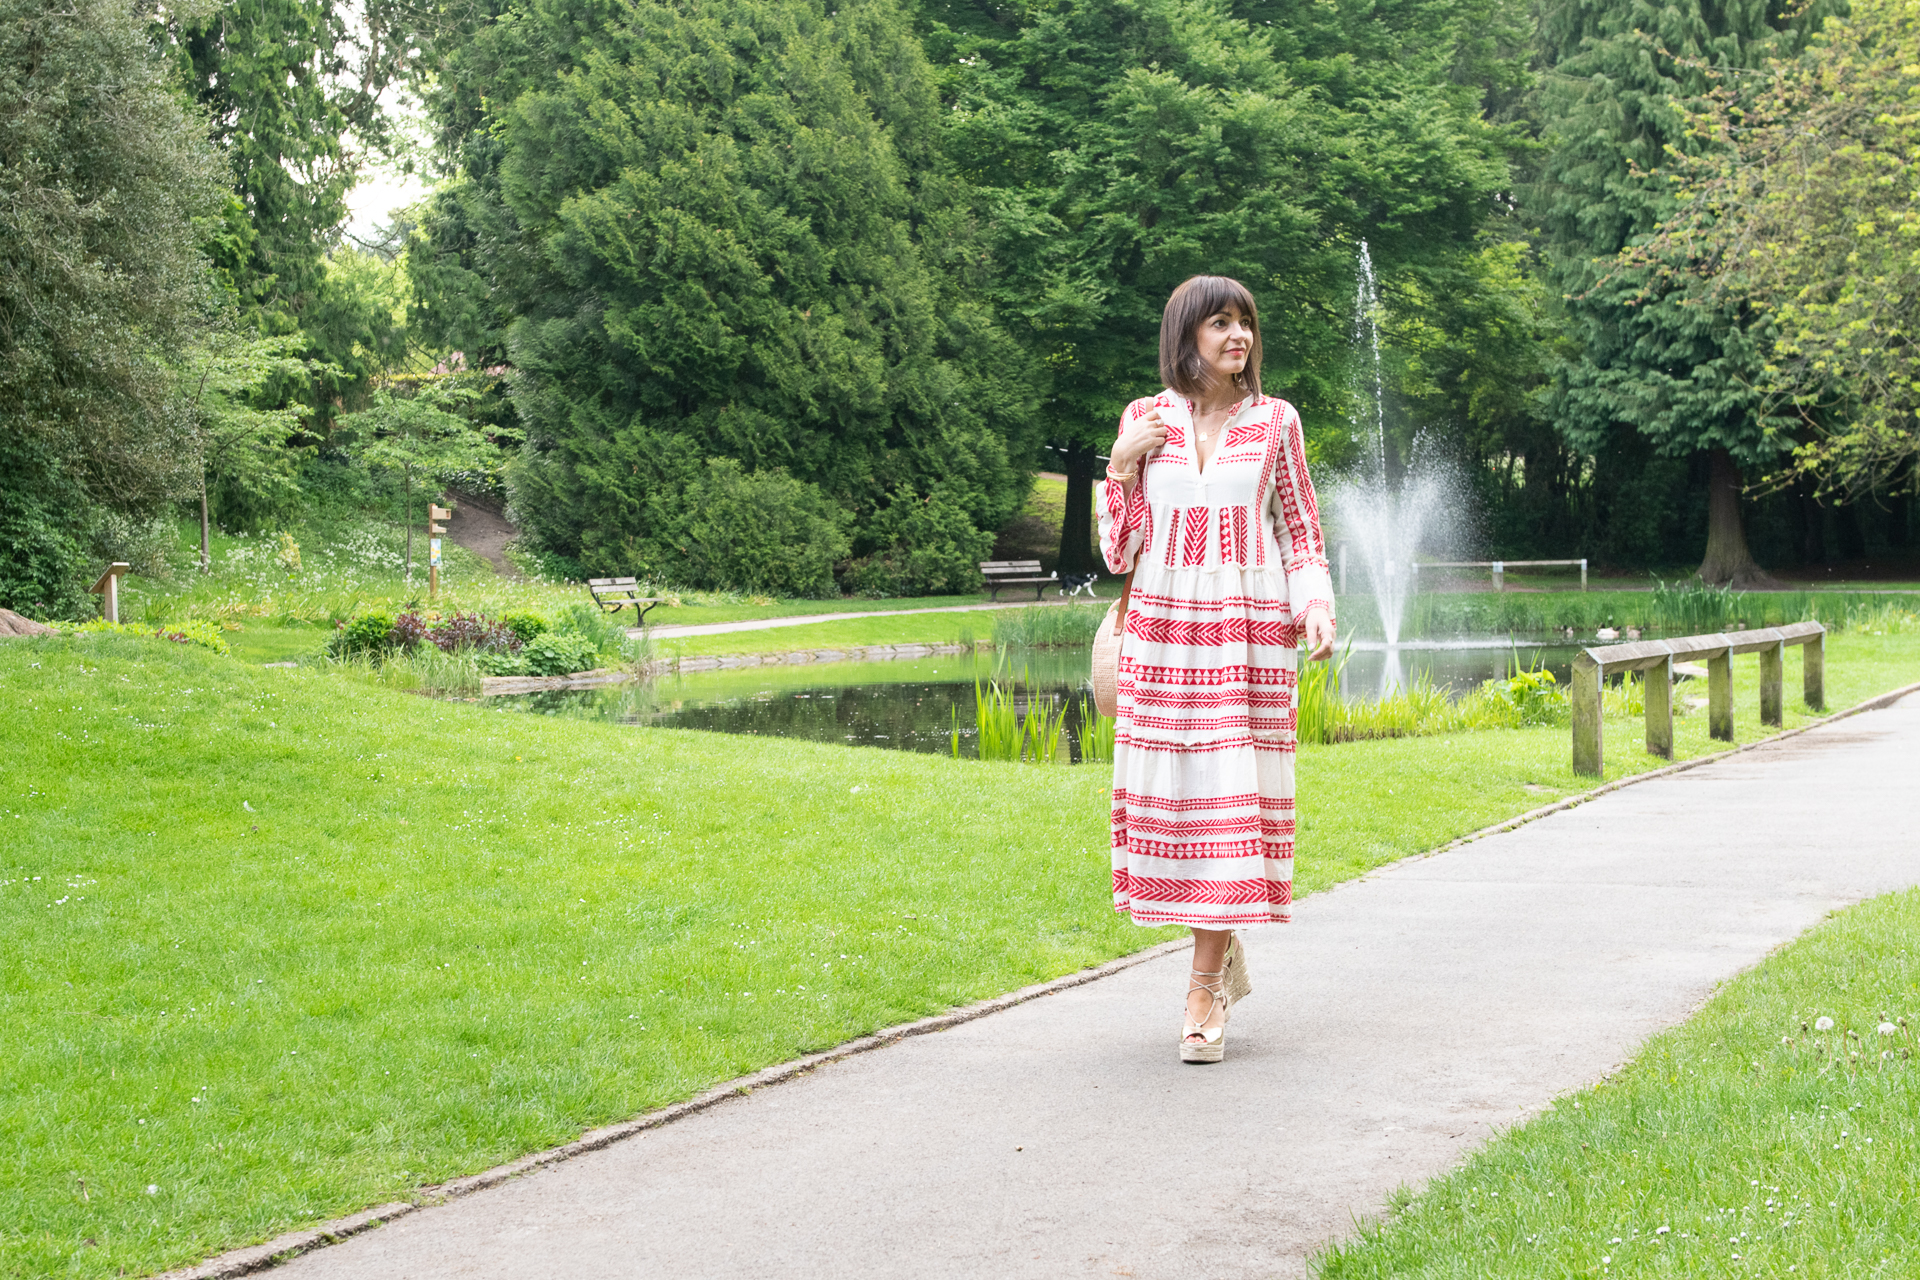 The Aztec dress. A red and cream cotton dress that is perfect for summer 2021. Worn here in a park to showcase how it looks great with a straw bag and espadrilles.